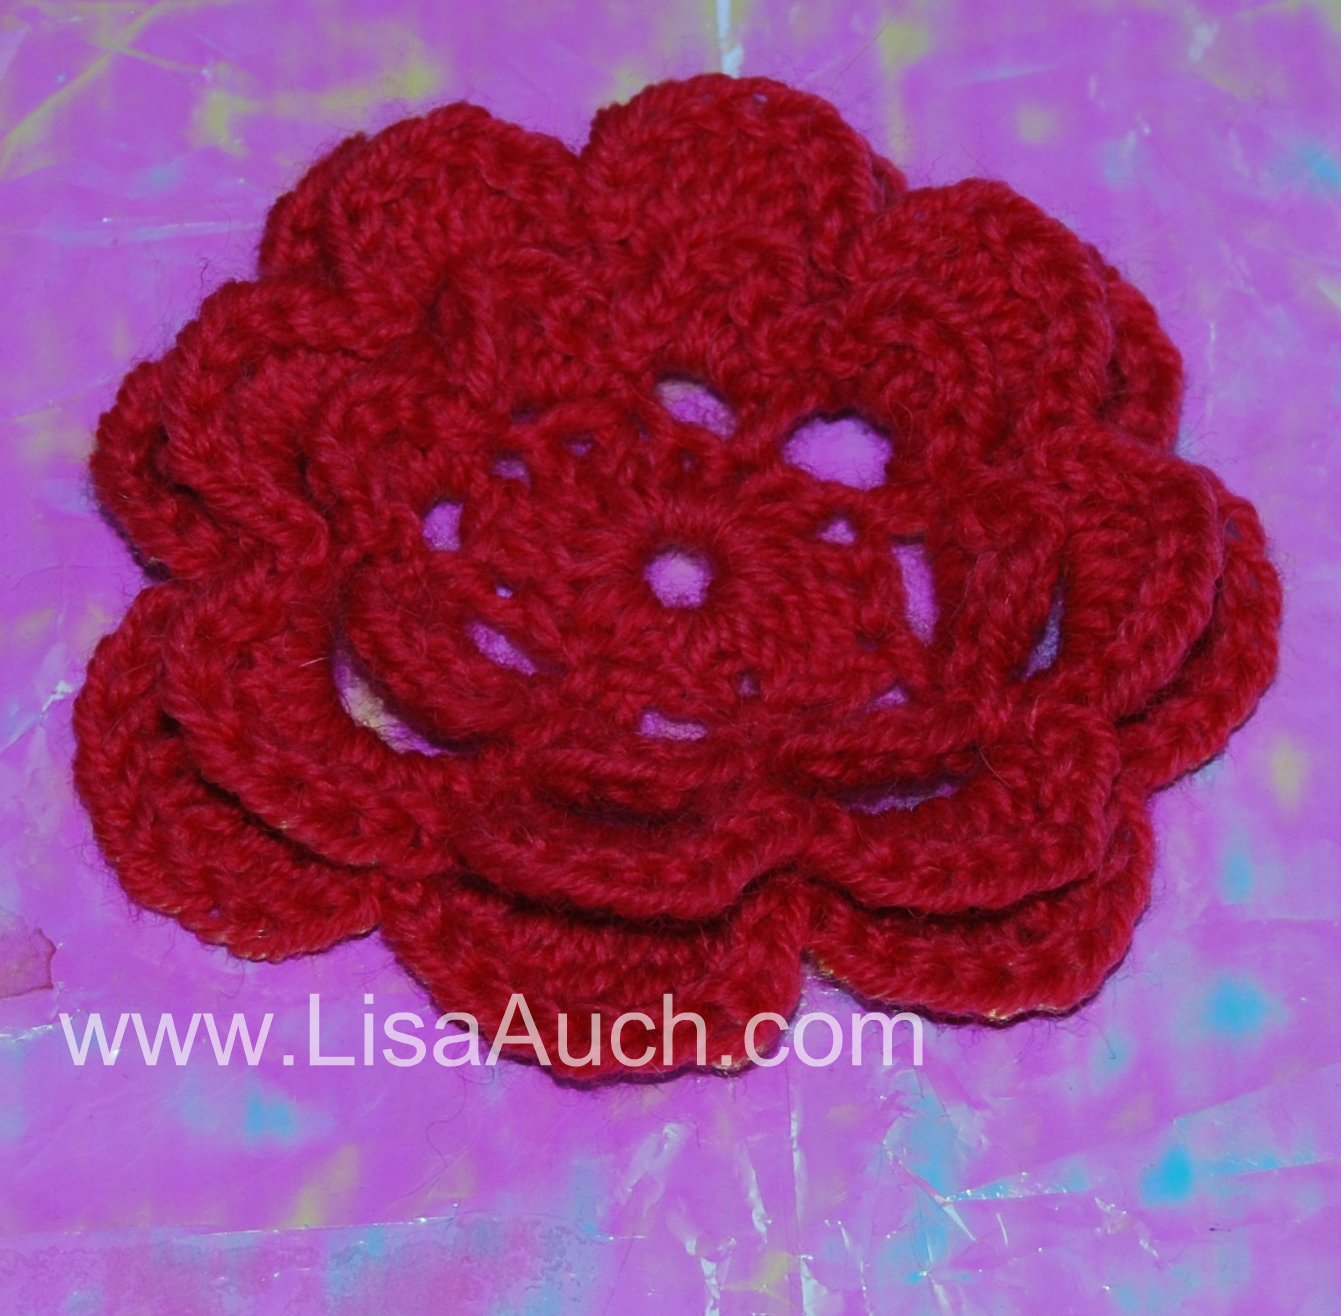 Free Crochet Pattern Large Flower : Alfa img - Showing > Easy Large Crochet Flower Patterns